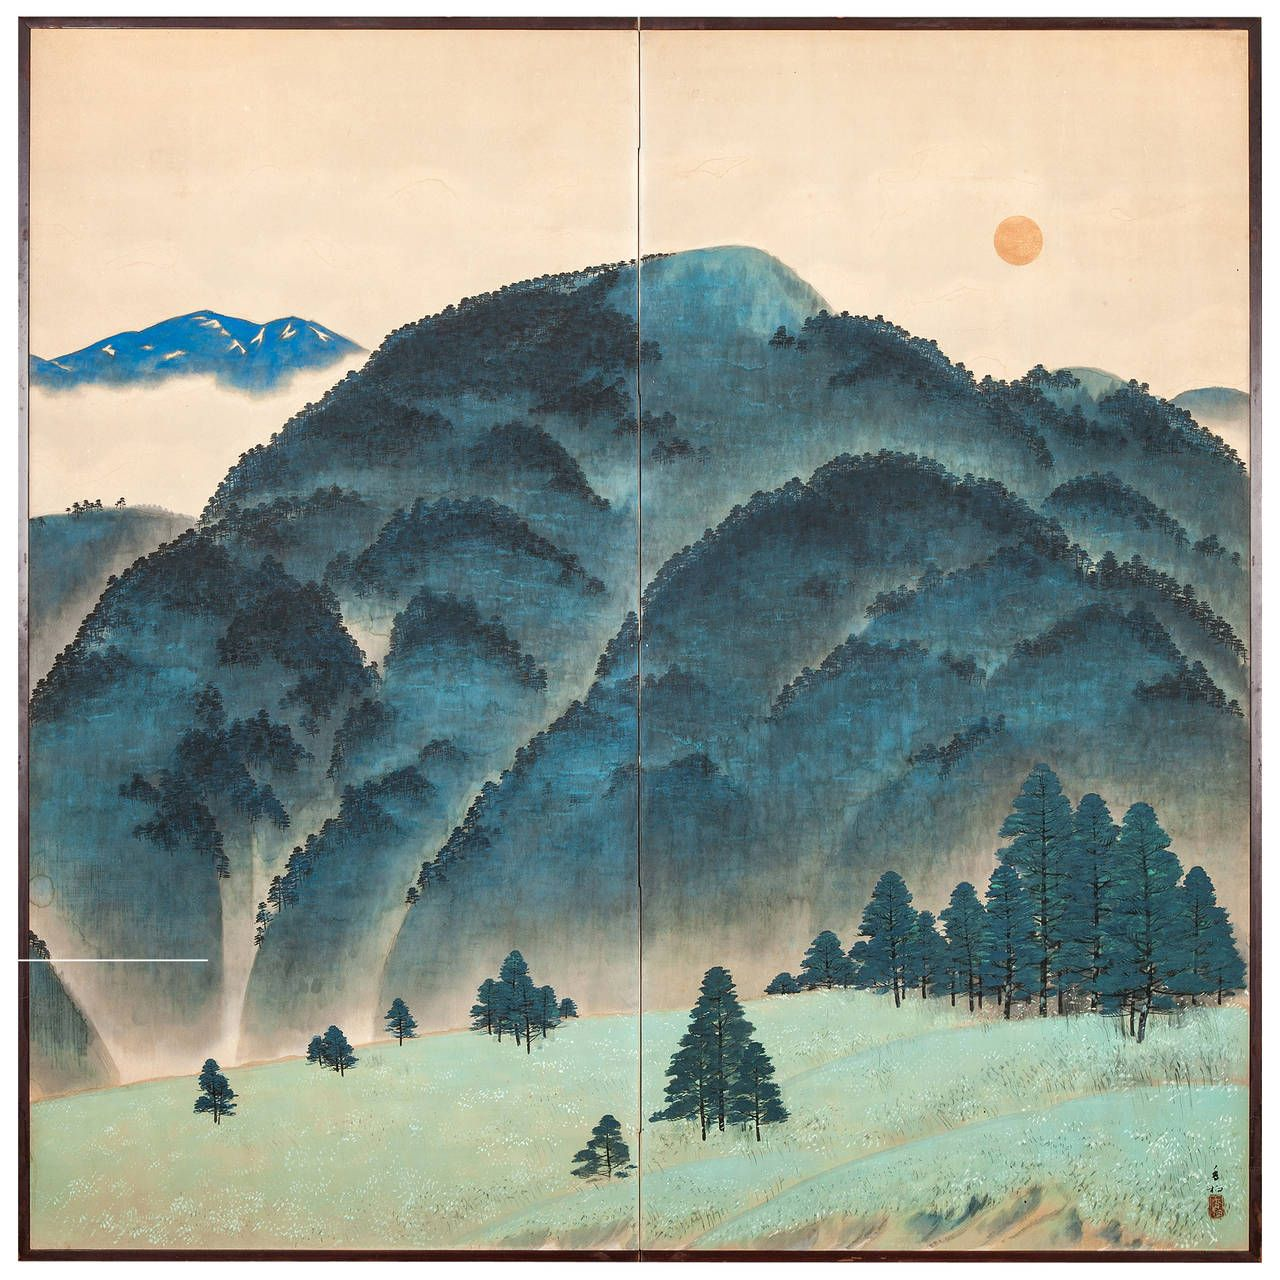 Antique japanese screens for sale - View This Item And Discover Similar Paintings And Screens For Sale At Japanese Screen Blue Mountain Landscape Two Panel Screen With Artist Signature And